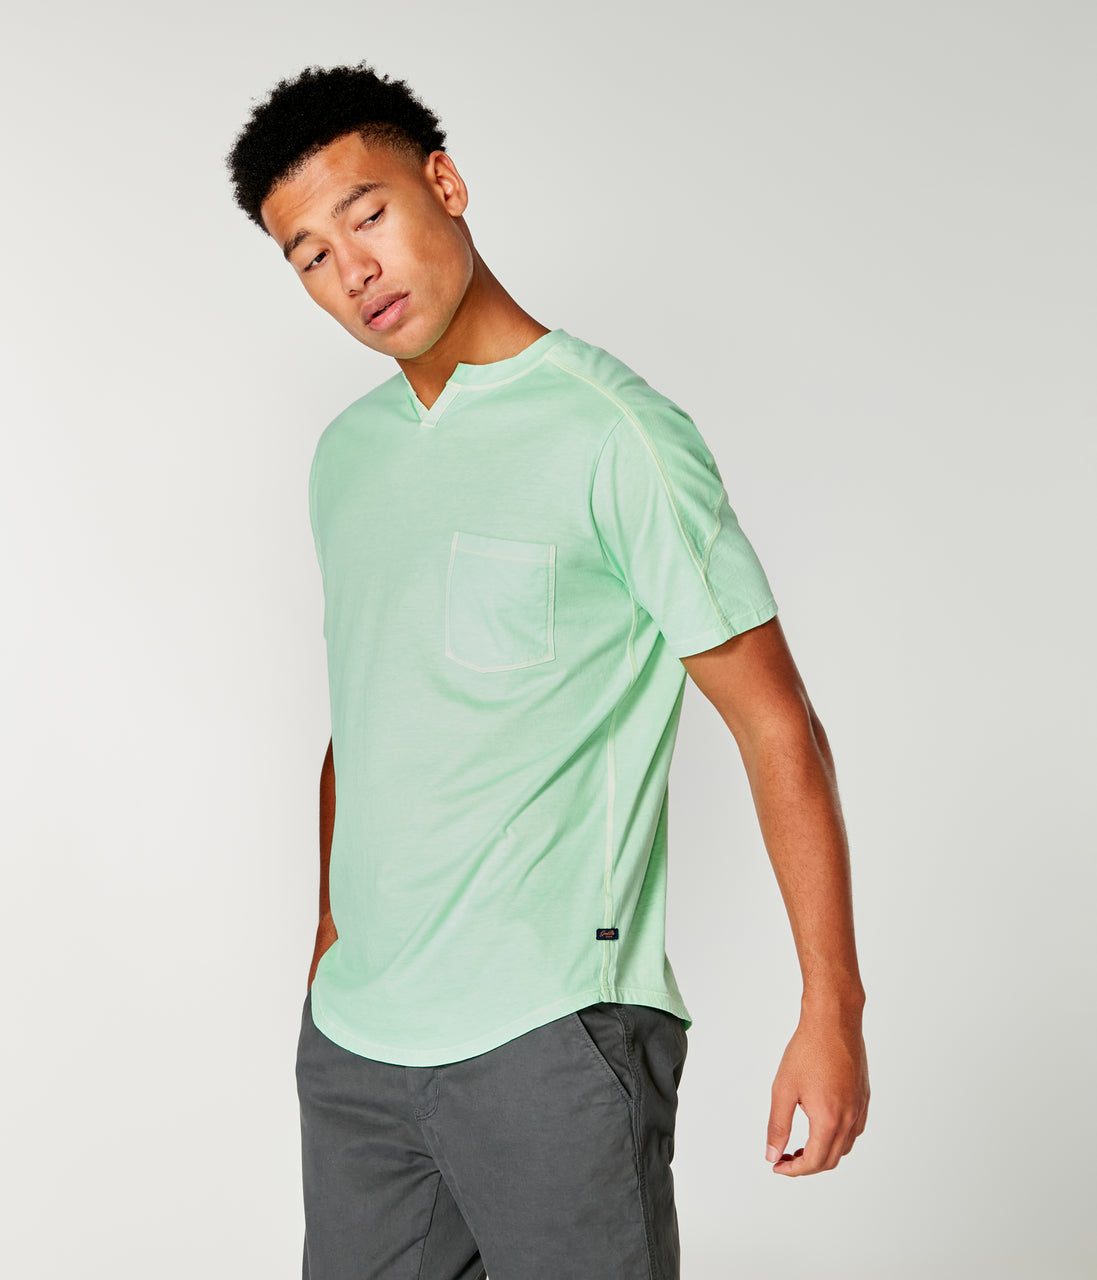 Premium Cotton Jersey Notch Neck Crew - Midori - Good Man Brand - Premium Cotton Jersey Notch Neck Crew - Midori